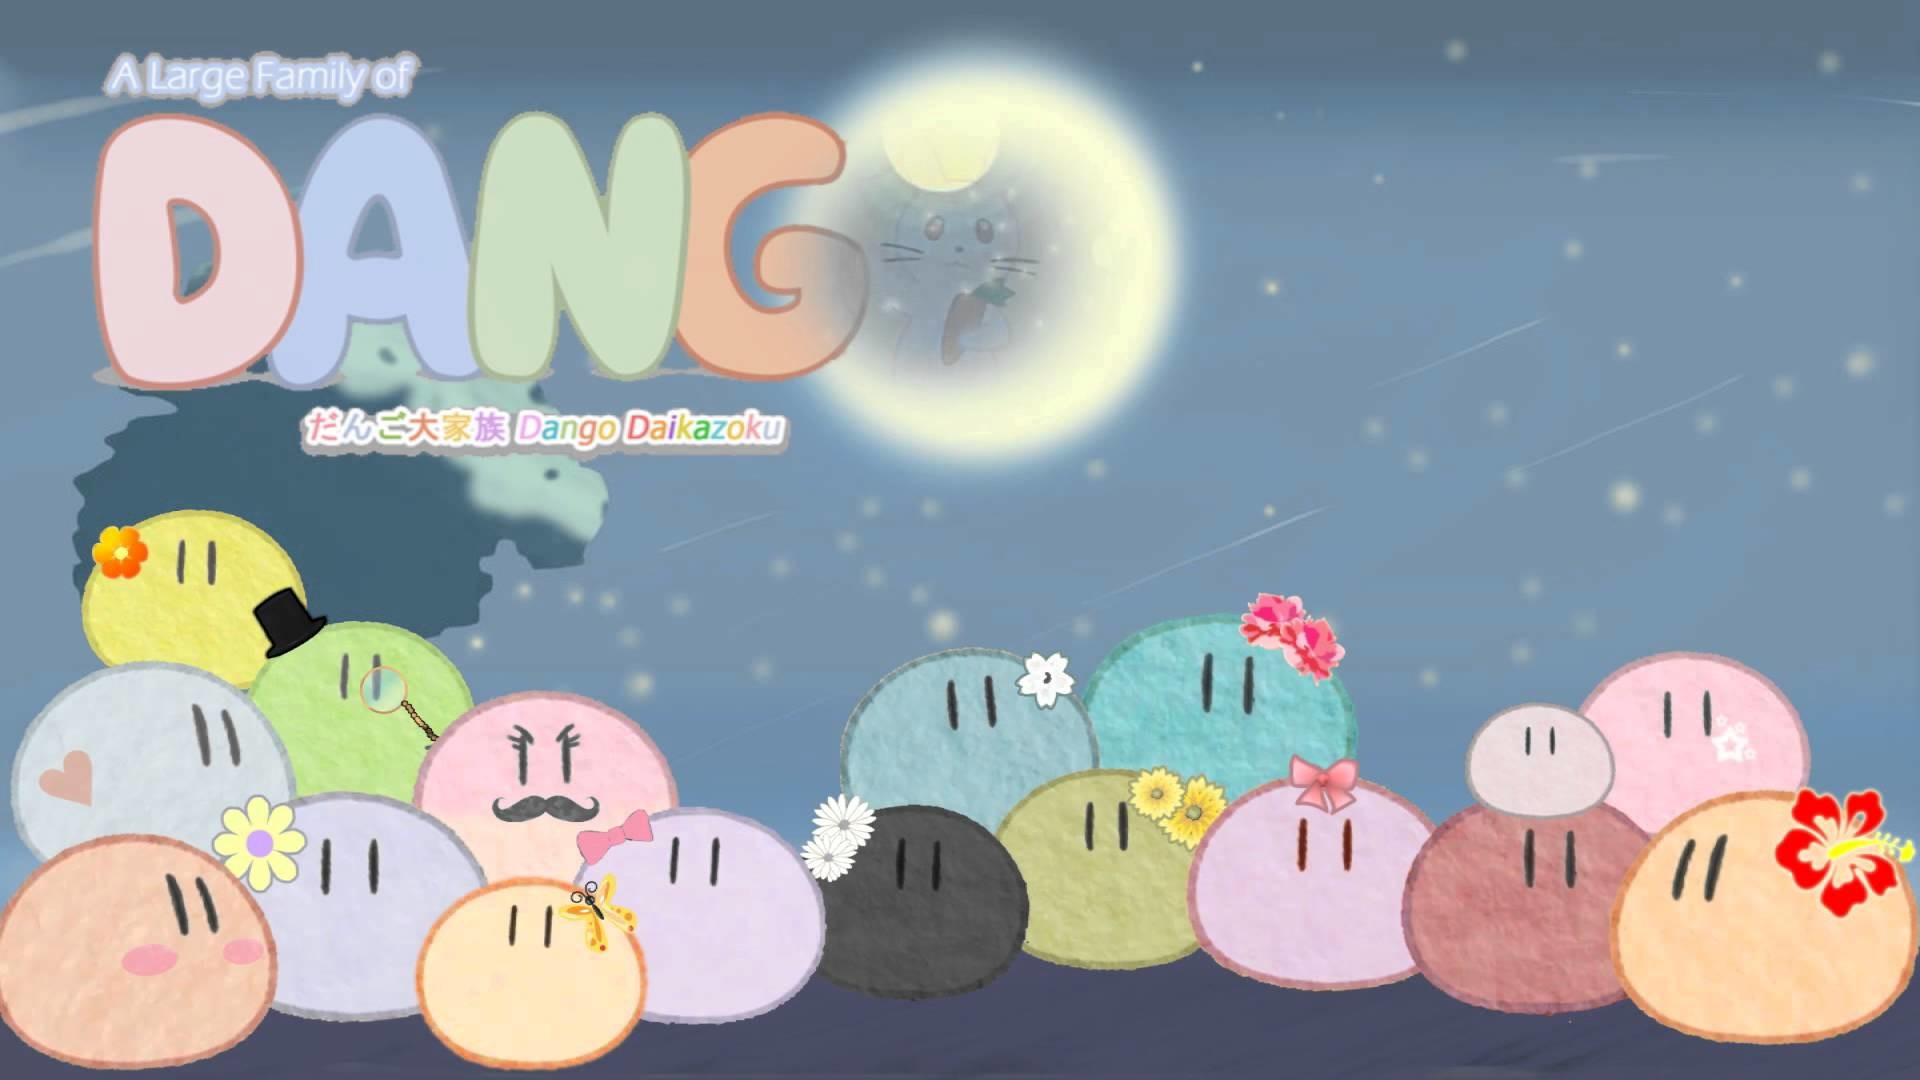 1920x1080 Clannad Dango Wallpaper - WallpaperSafari